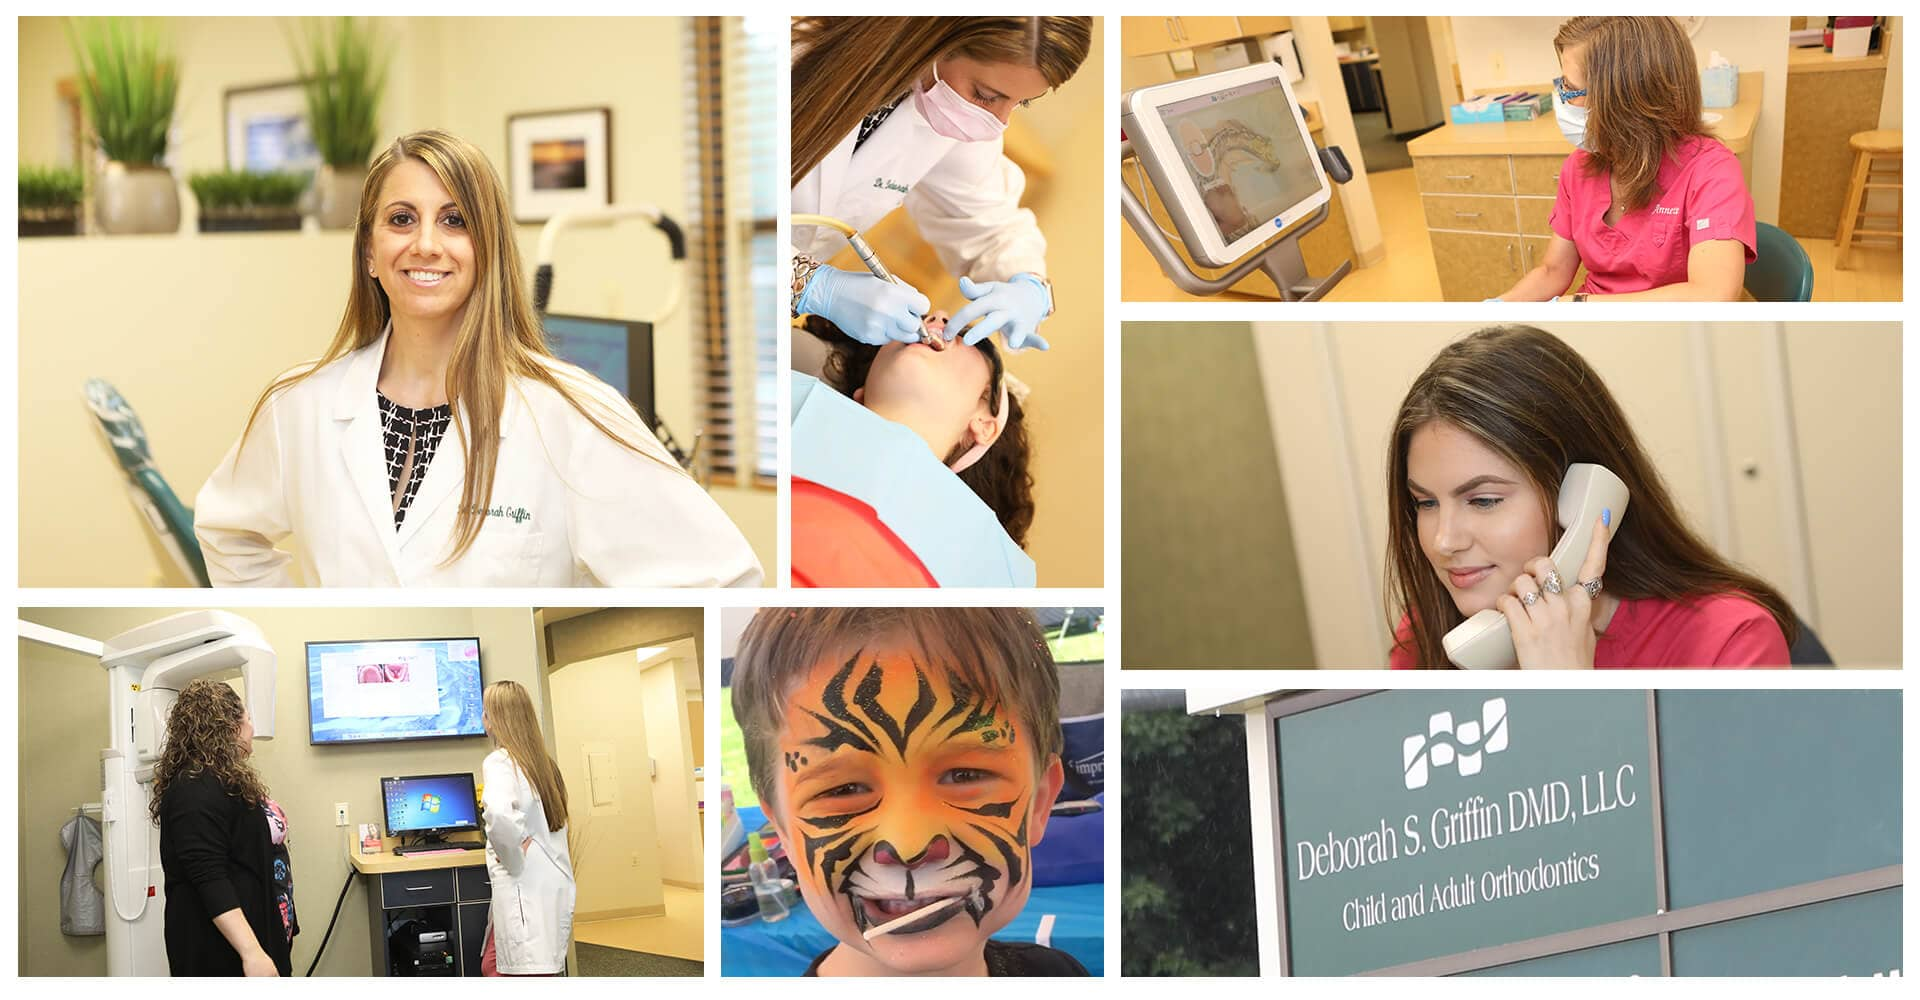 A collage showing our receptionists, dental assistants, and Dr. Deborah working in the office